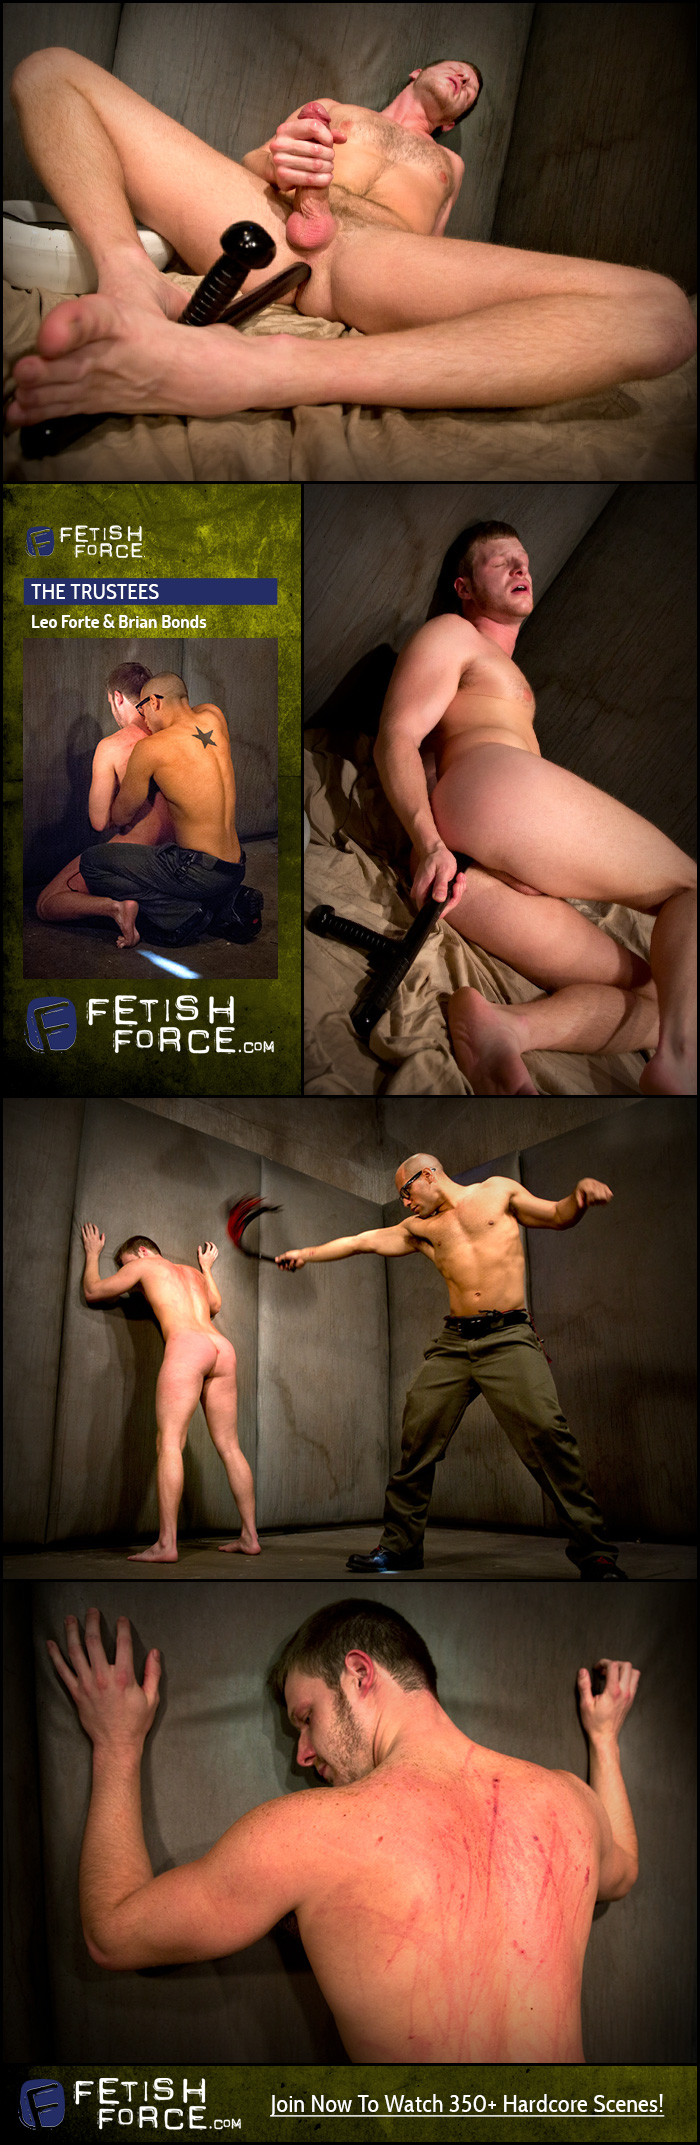 Fetish Force – Leo Forte & Brian Bonds